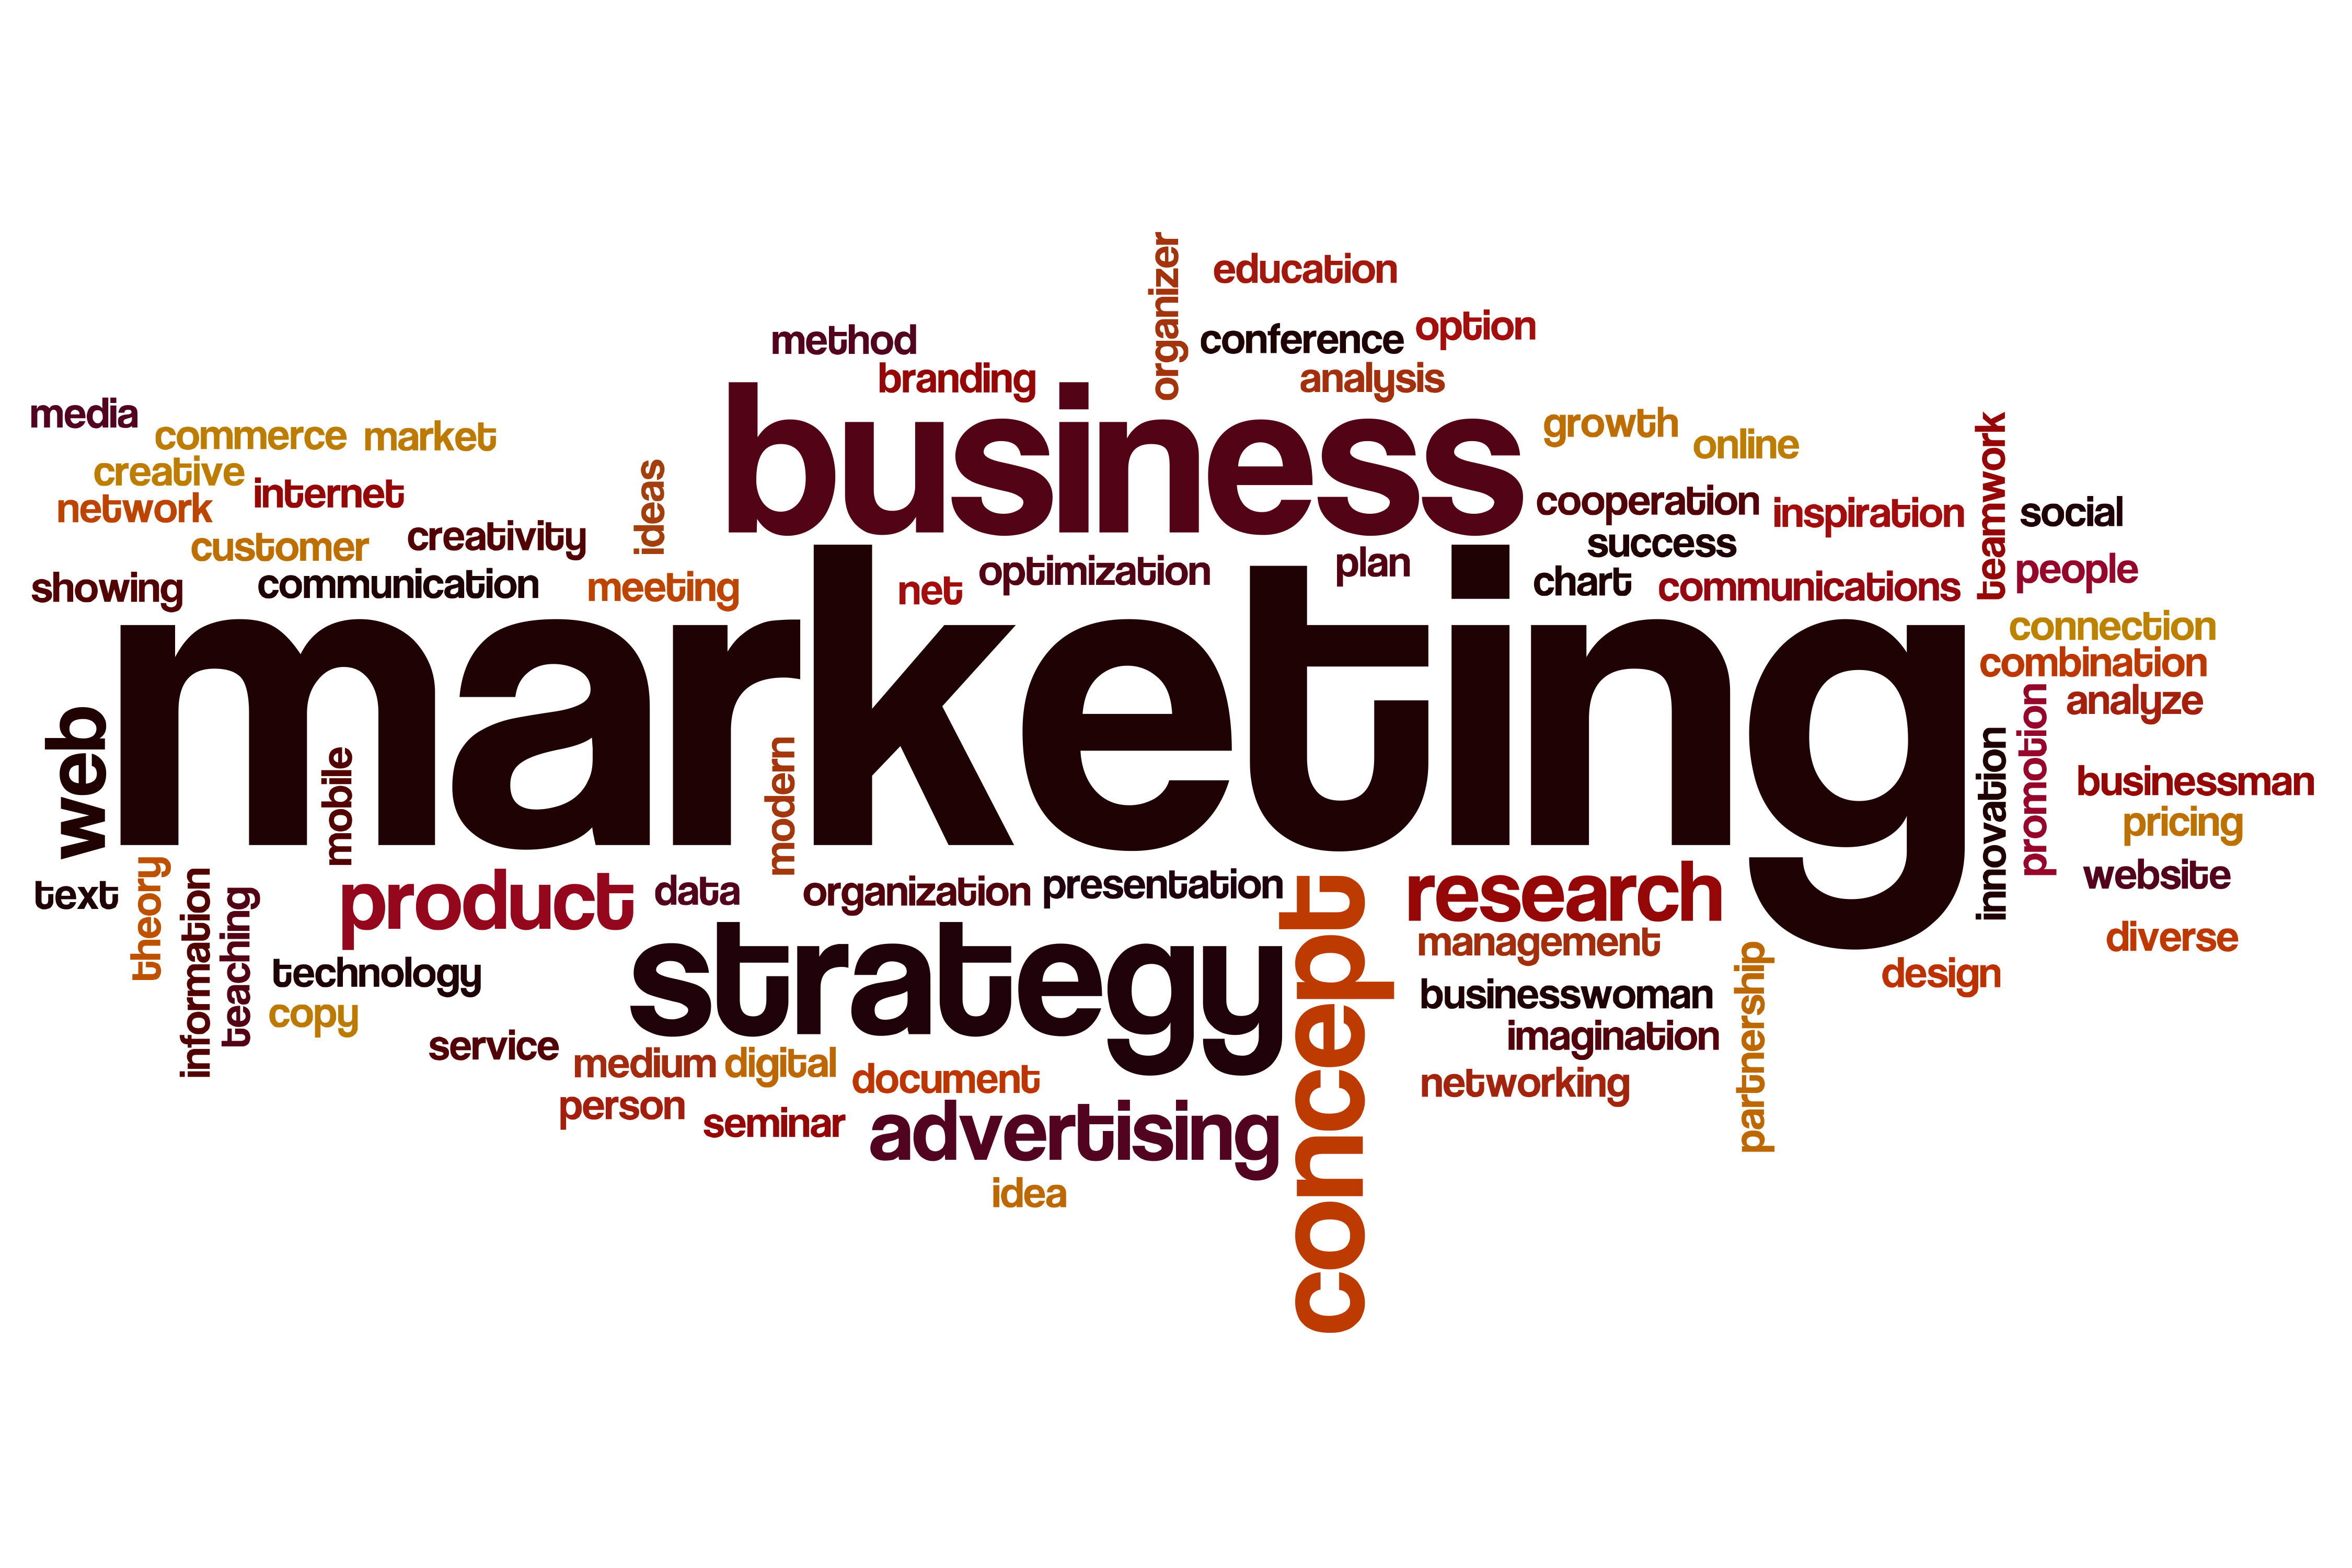 Terms relating to marketing